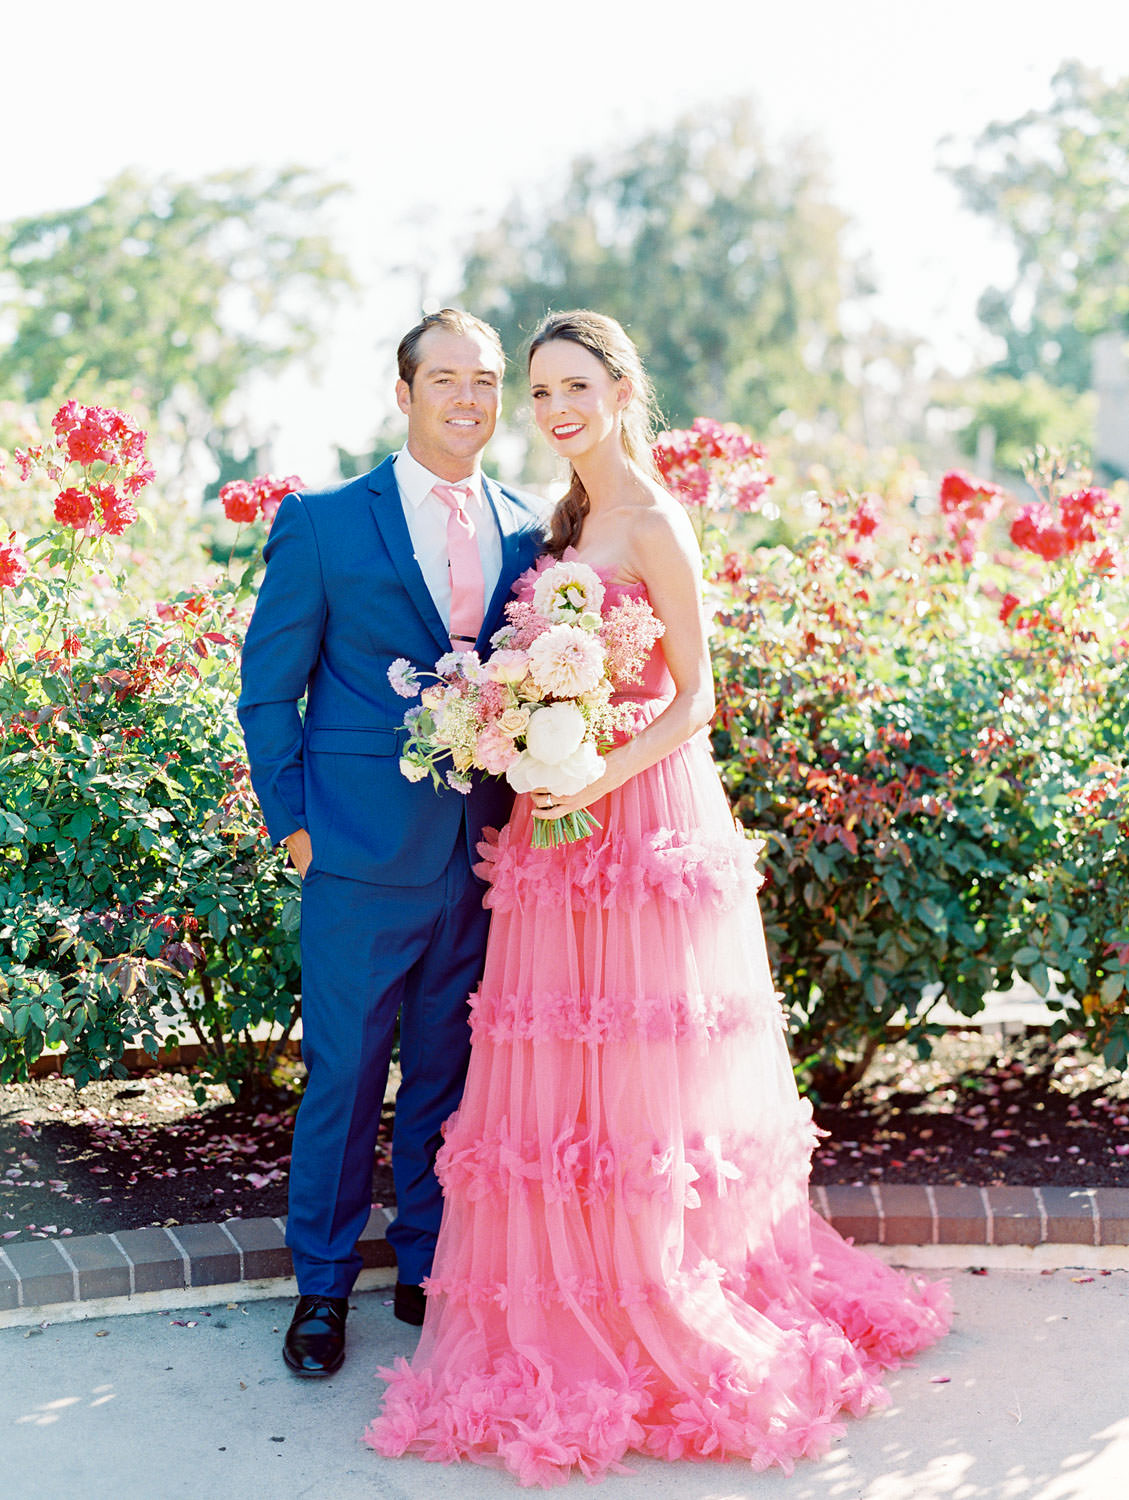 Bride in pink strapless Marchesa Notte gown holding bouquet with pink, lavender, ivory, and green flowers in a rose garden. Groom in blue suit and pink tie to match his wife. Balboa Park San Diego Anniversary Photos by Cavin Elizabeth Photography